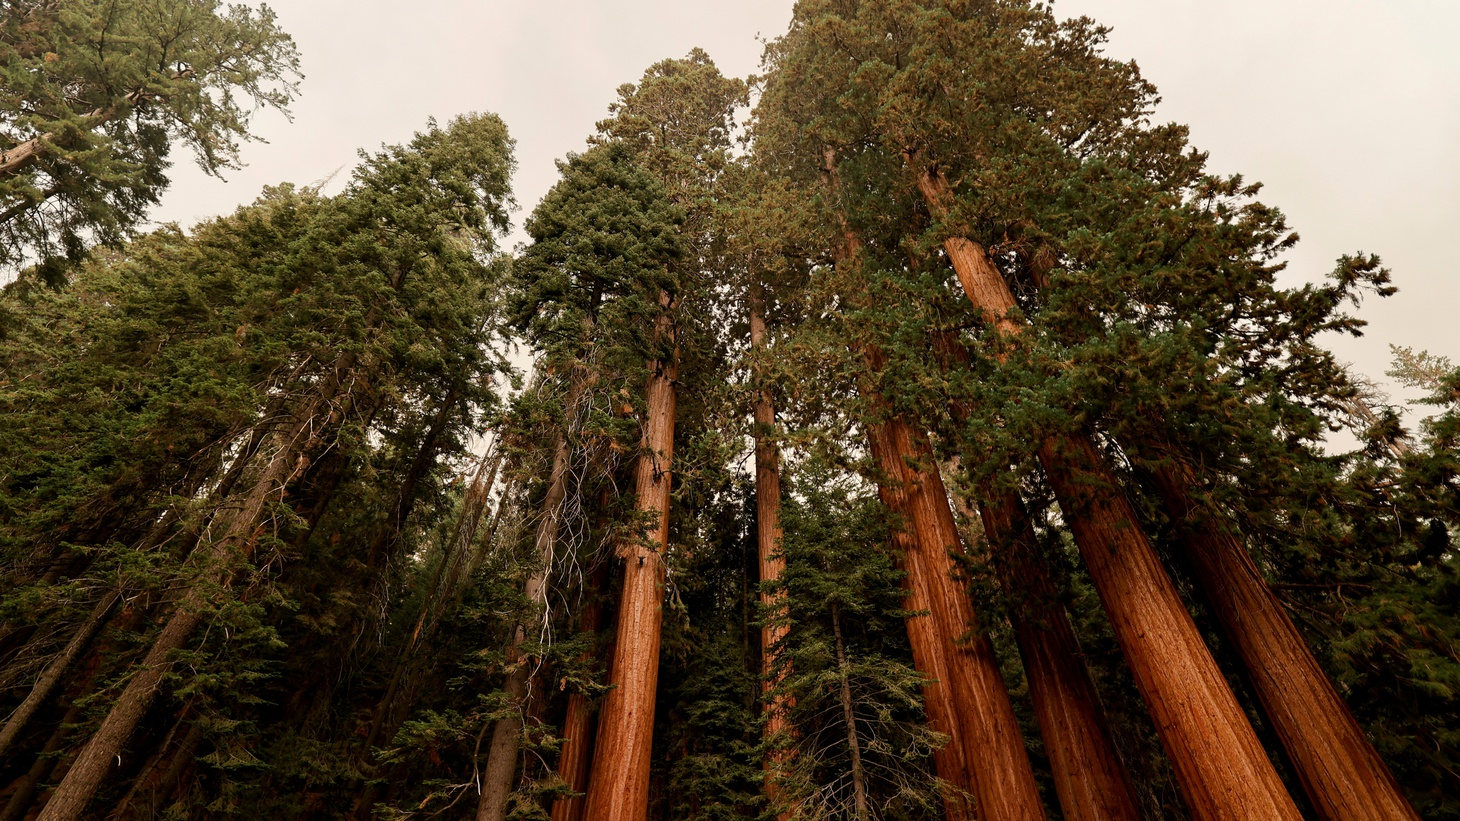 Sequoia trees are seen amid smoke in the Sequoia National Forest in California, U.S. September 17, 2021.